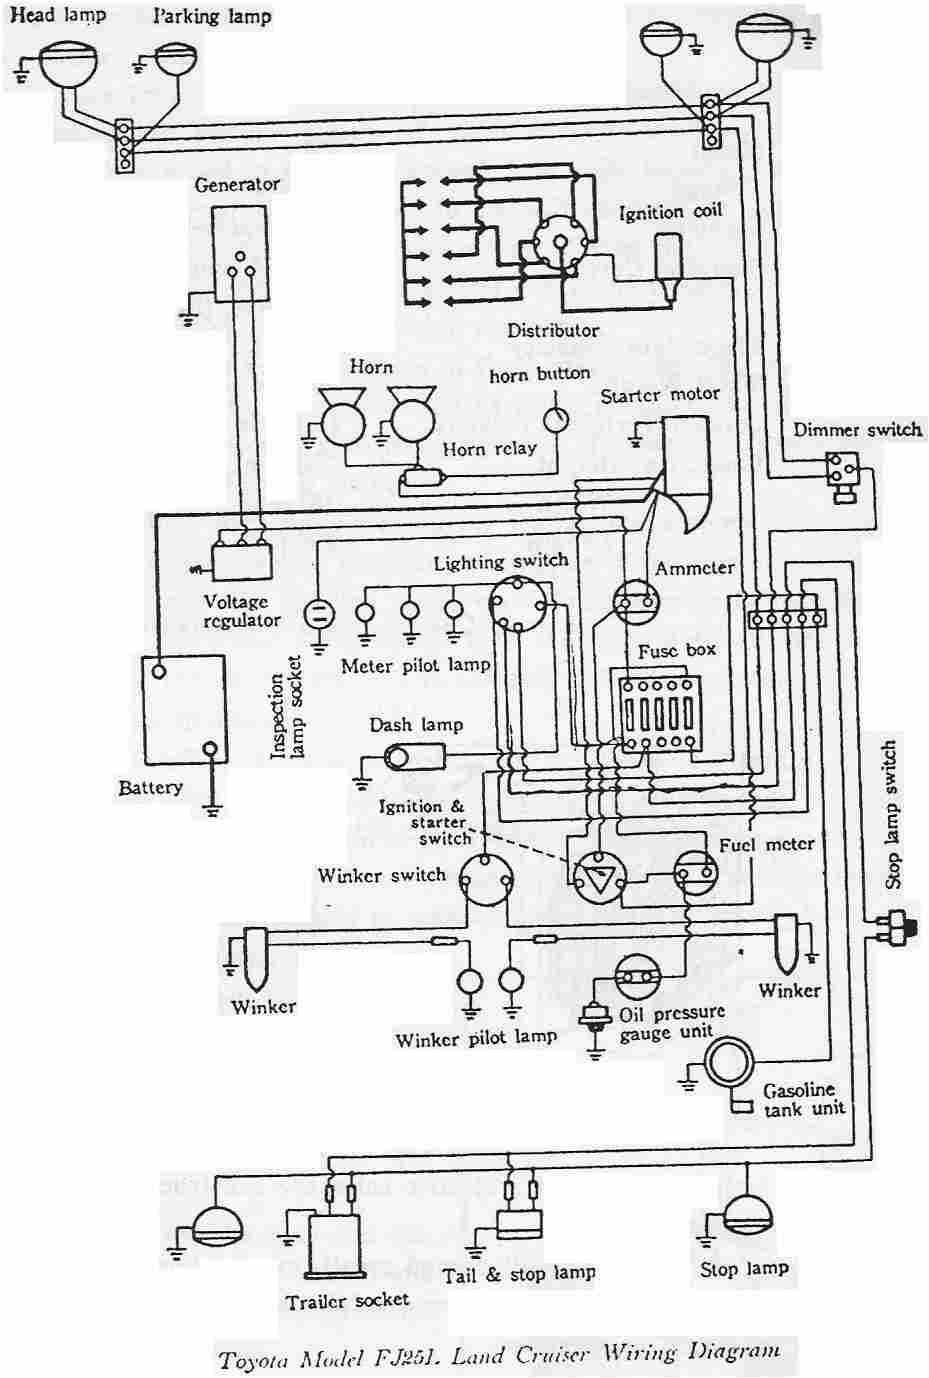 1995 Toyota Land Cruiser Wiring Diagram, 1995, Free Engine